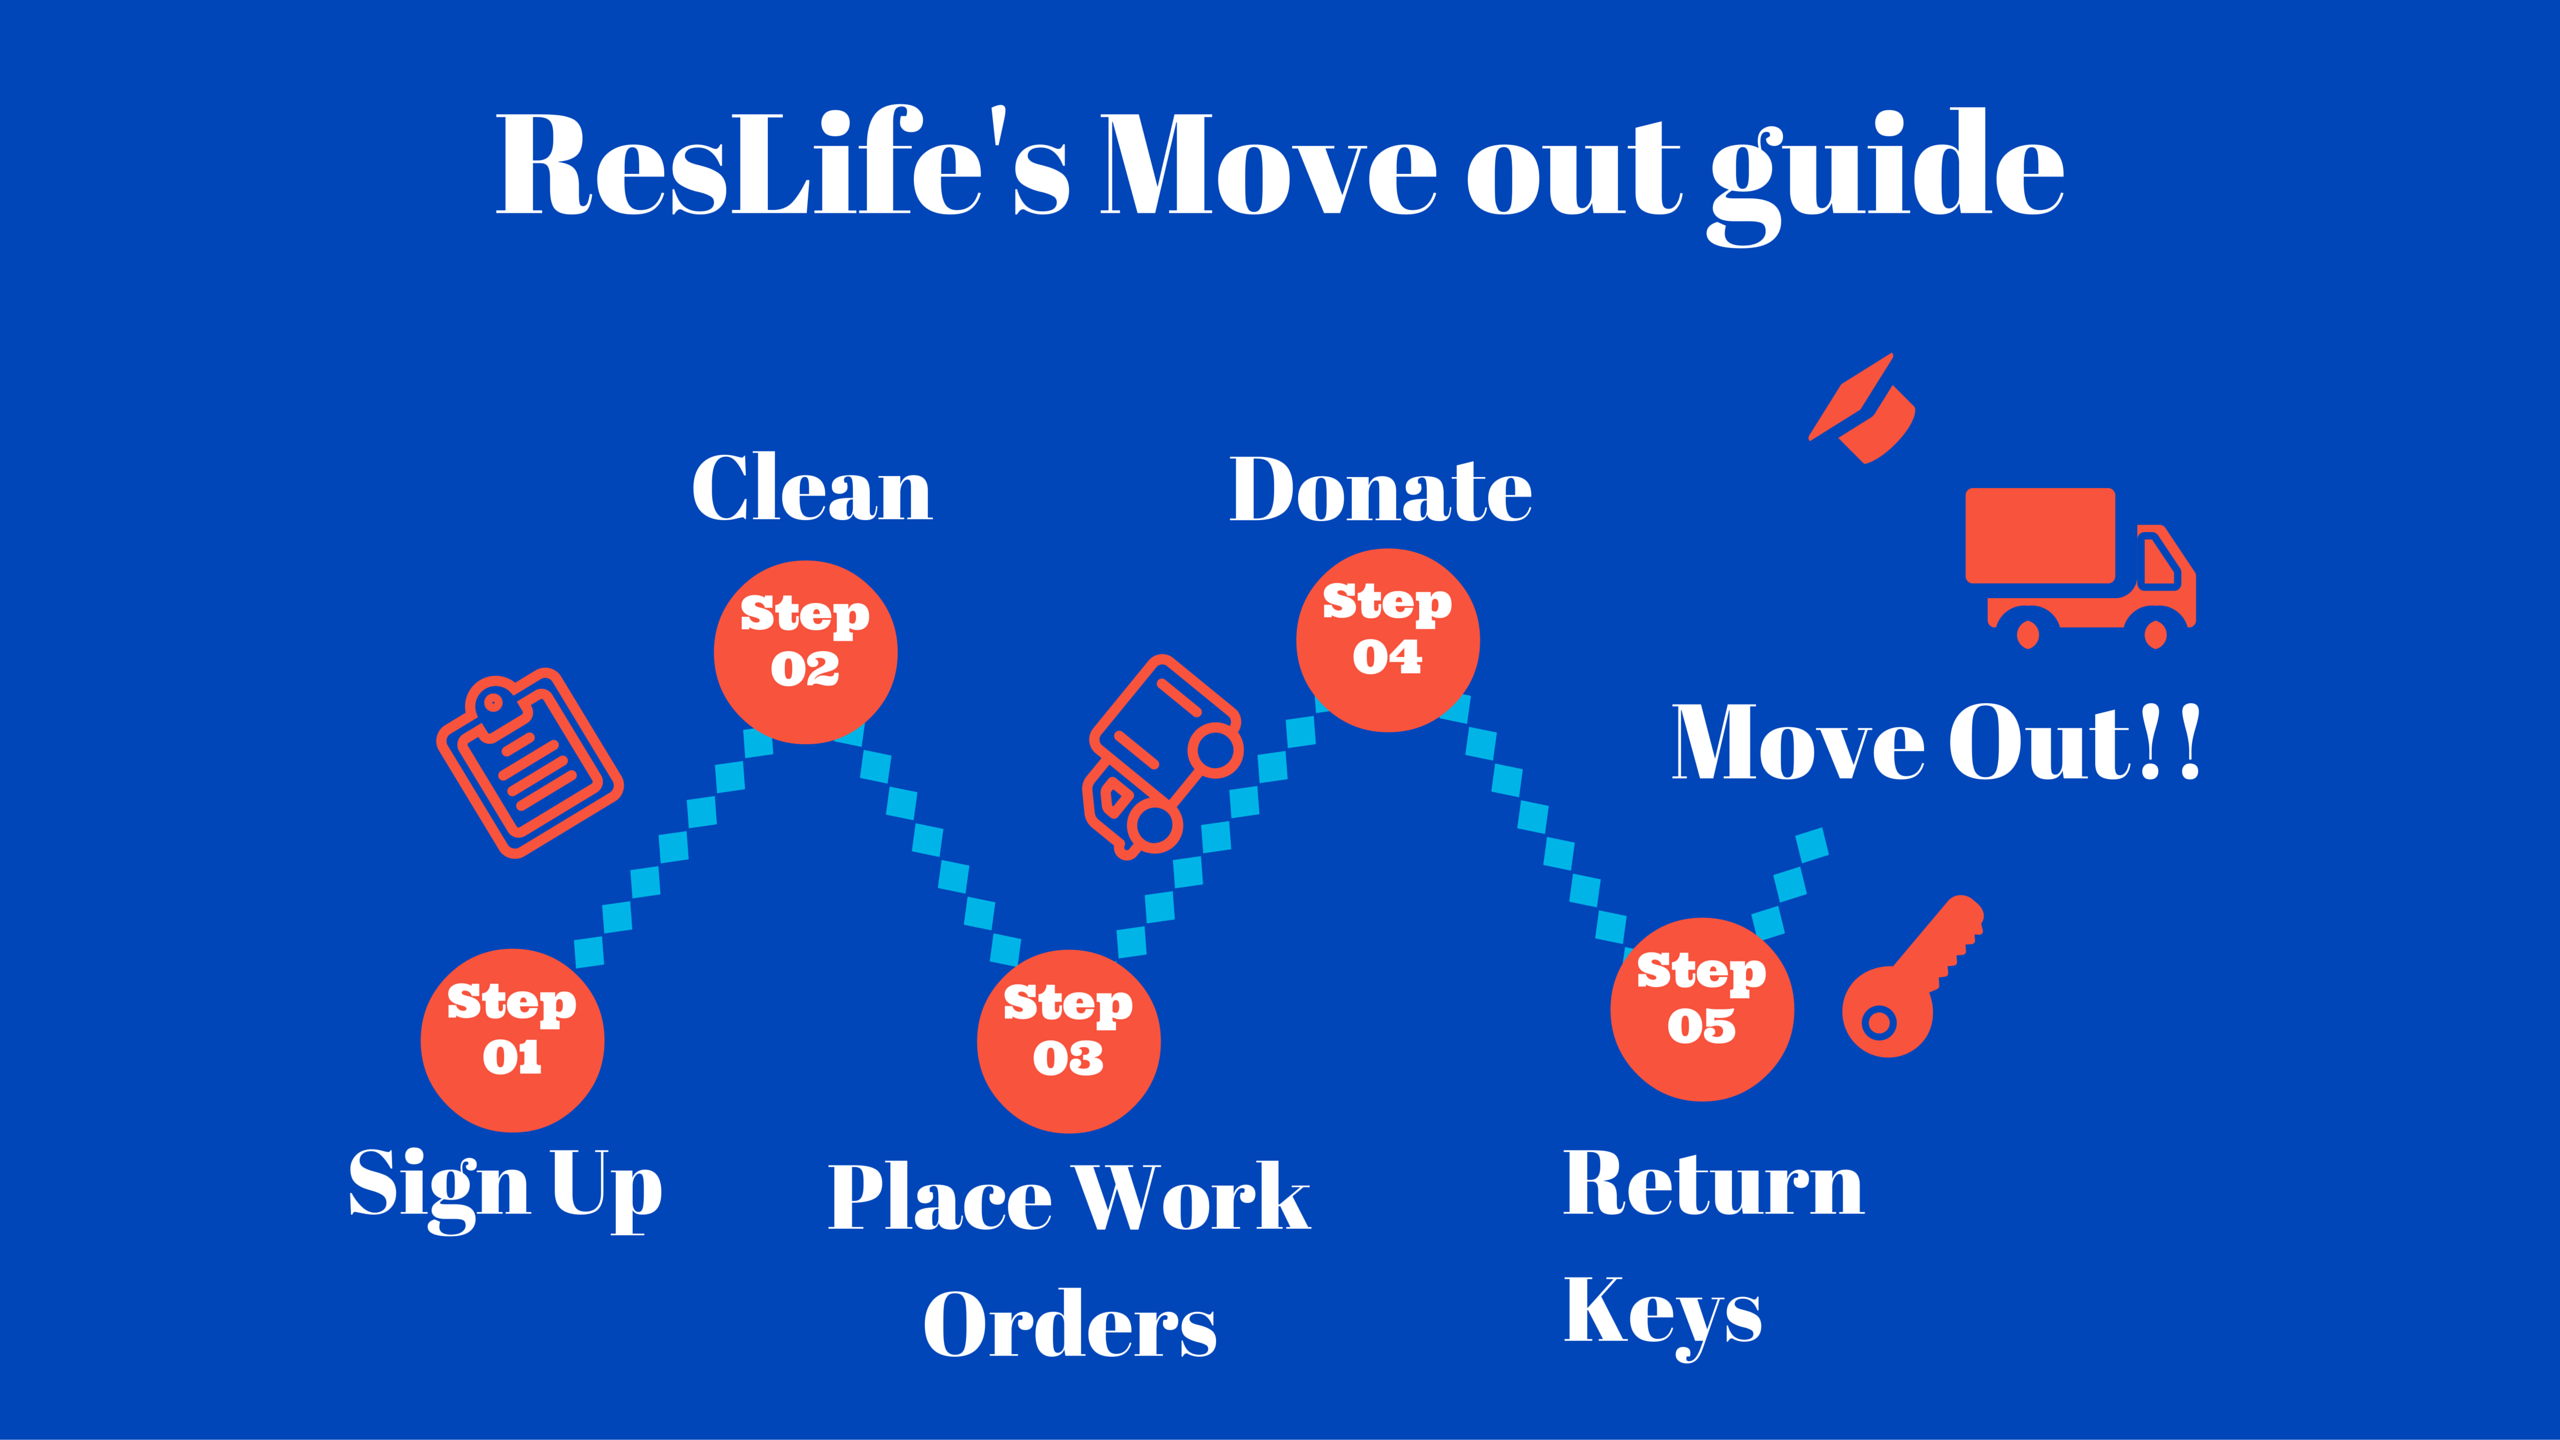 ResLife's Move out guide